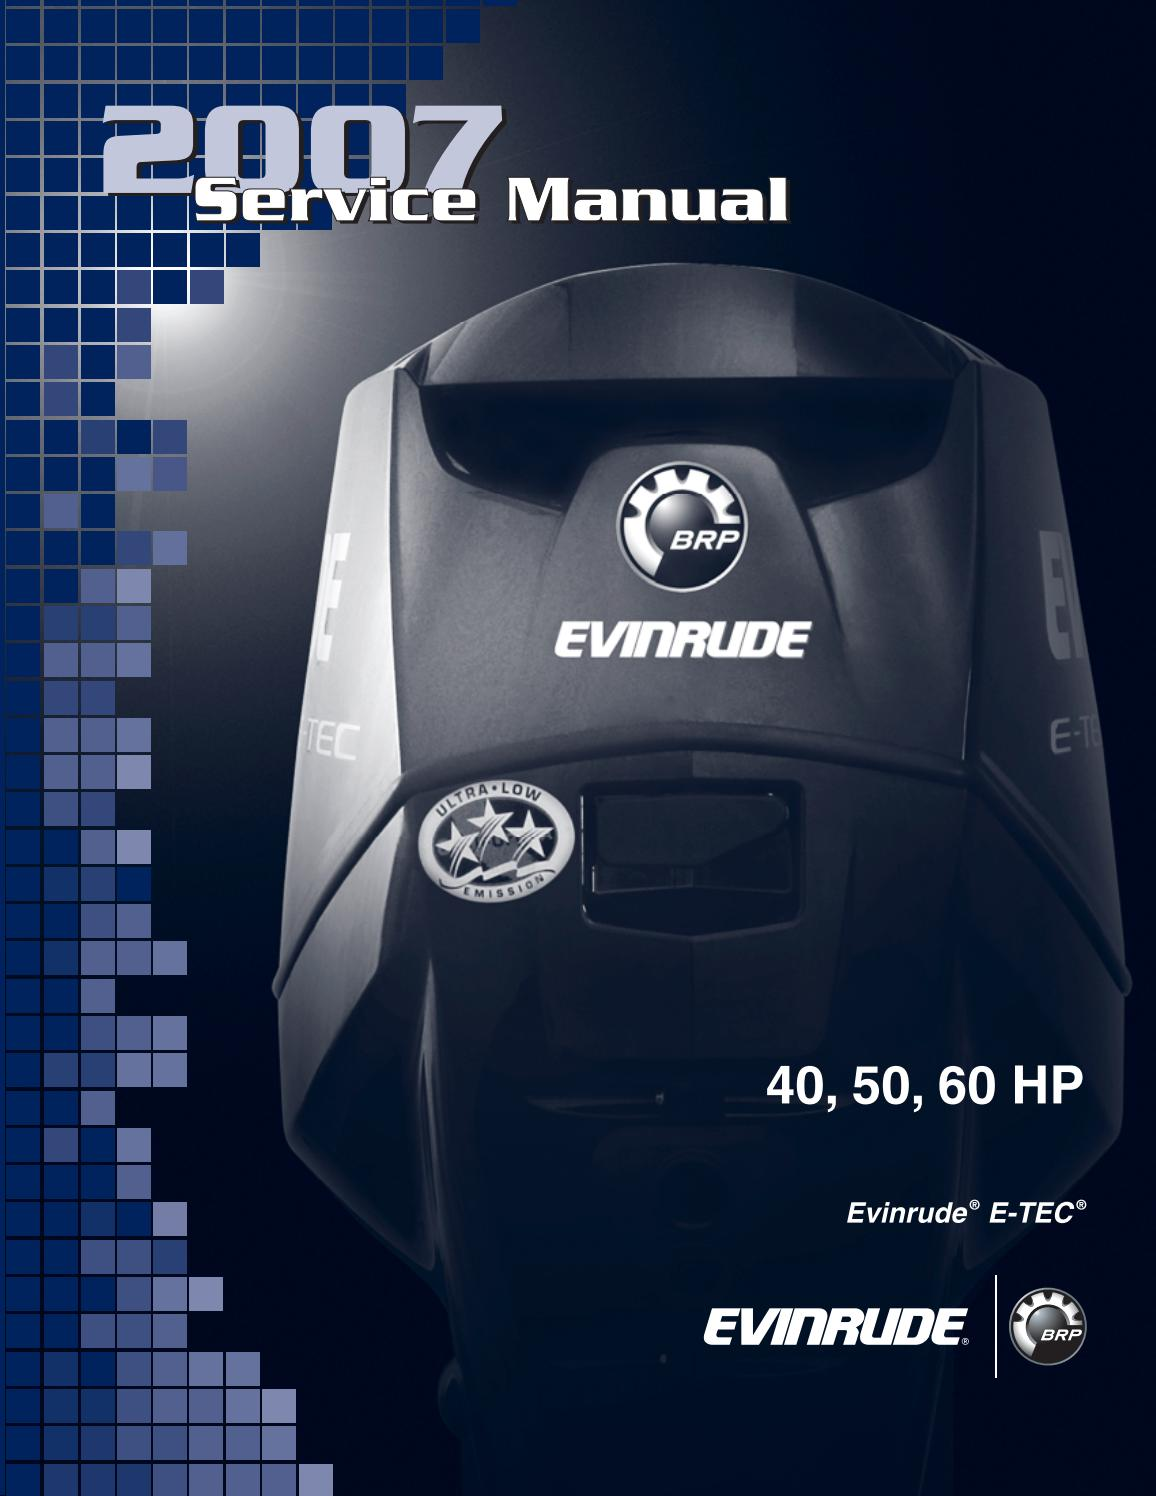 2007 Johnson Evinrude Outboard 40hp Service Repair Manual By C5oqv2h Issuu